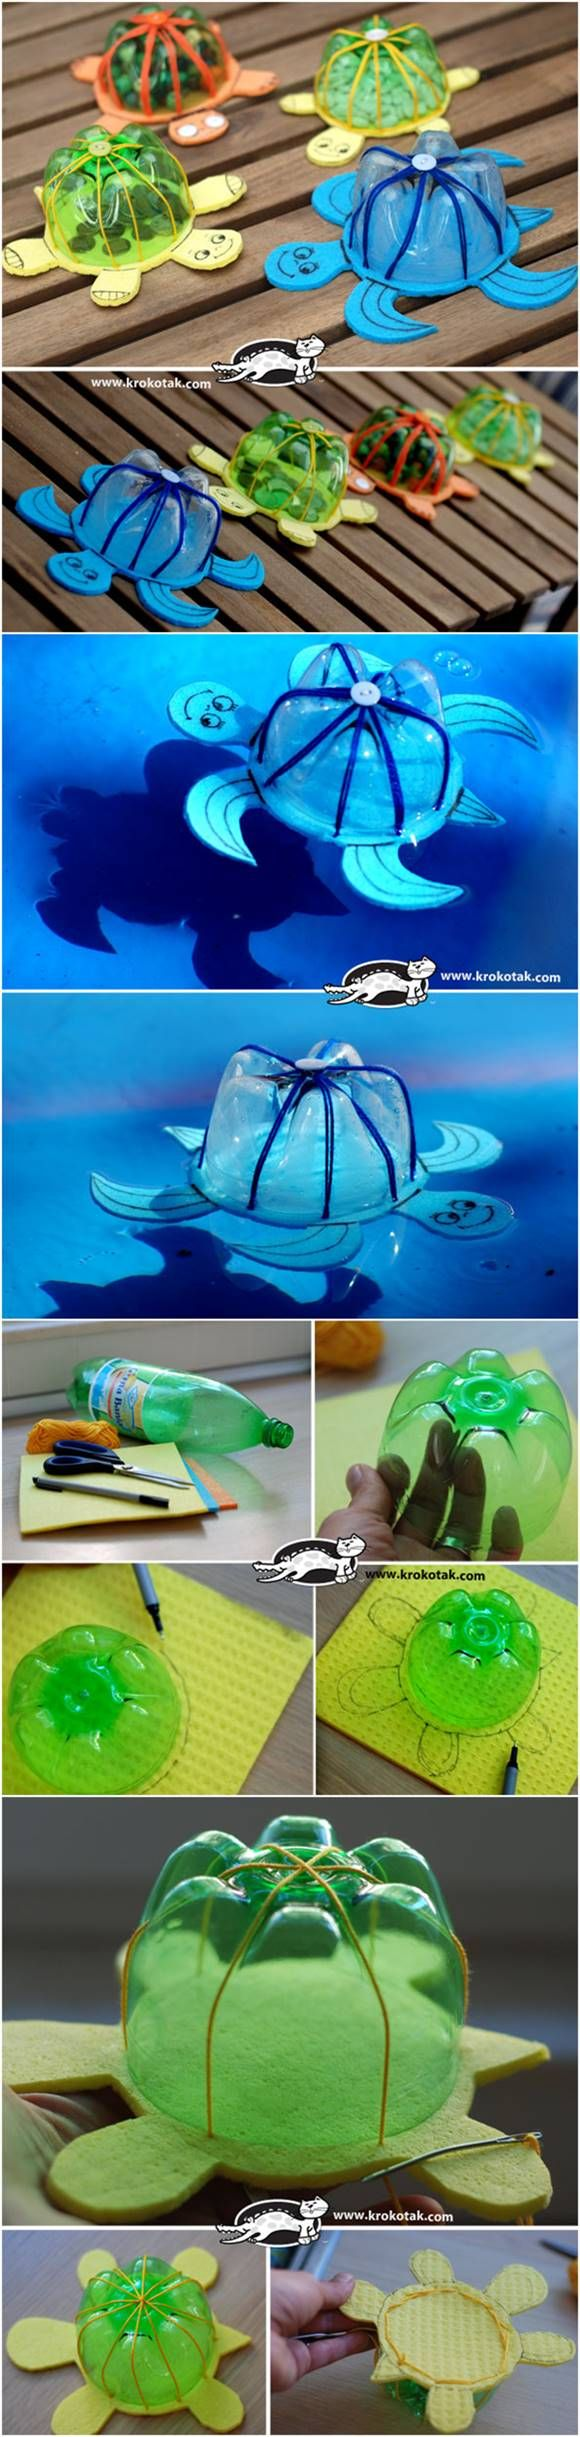 How to Make DIY Turtle Toys from Recycled Plastic Bottles #craft #kids #toy #recycle